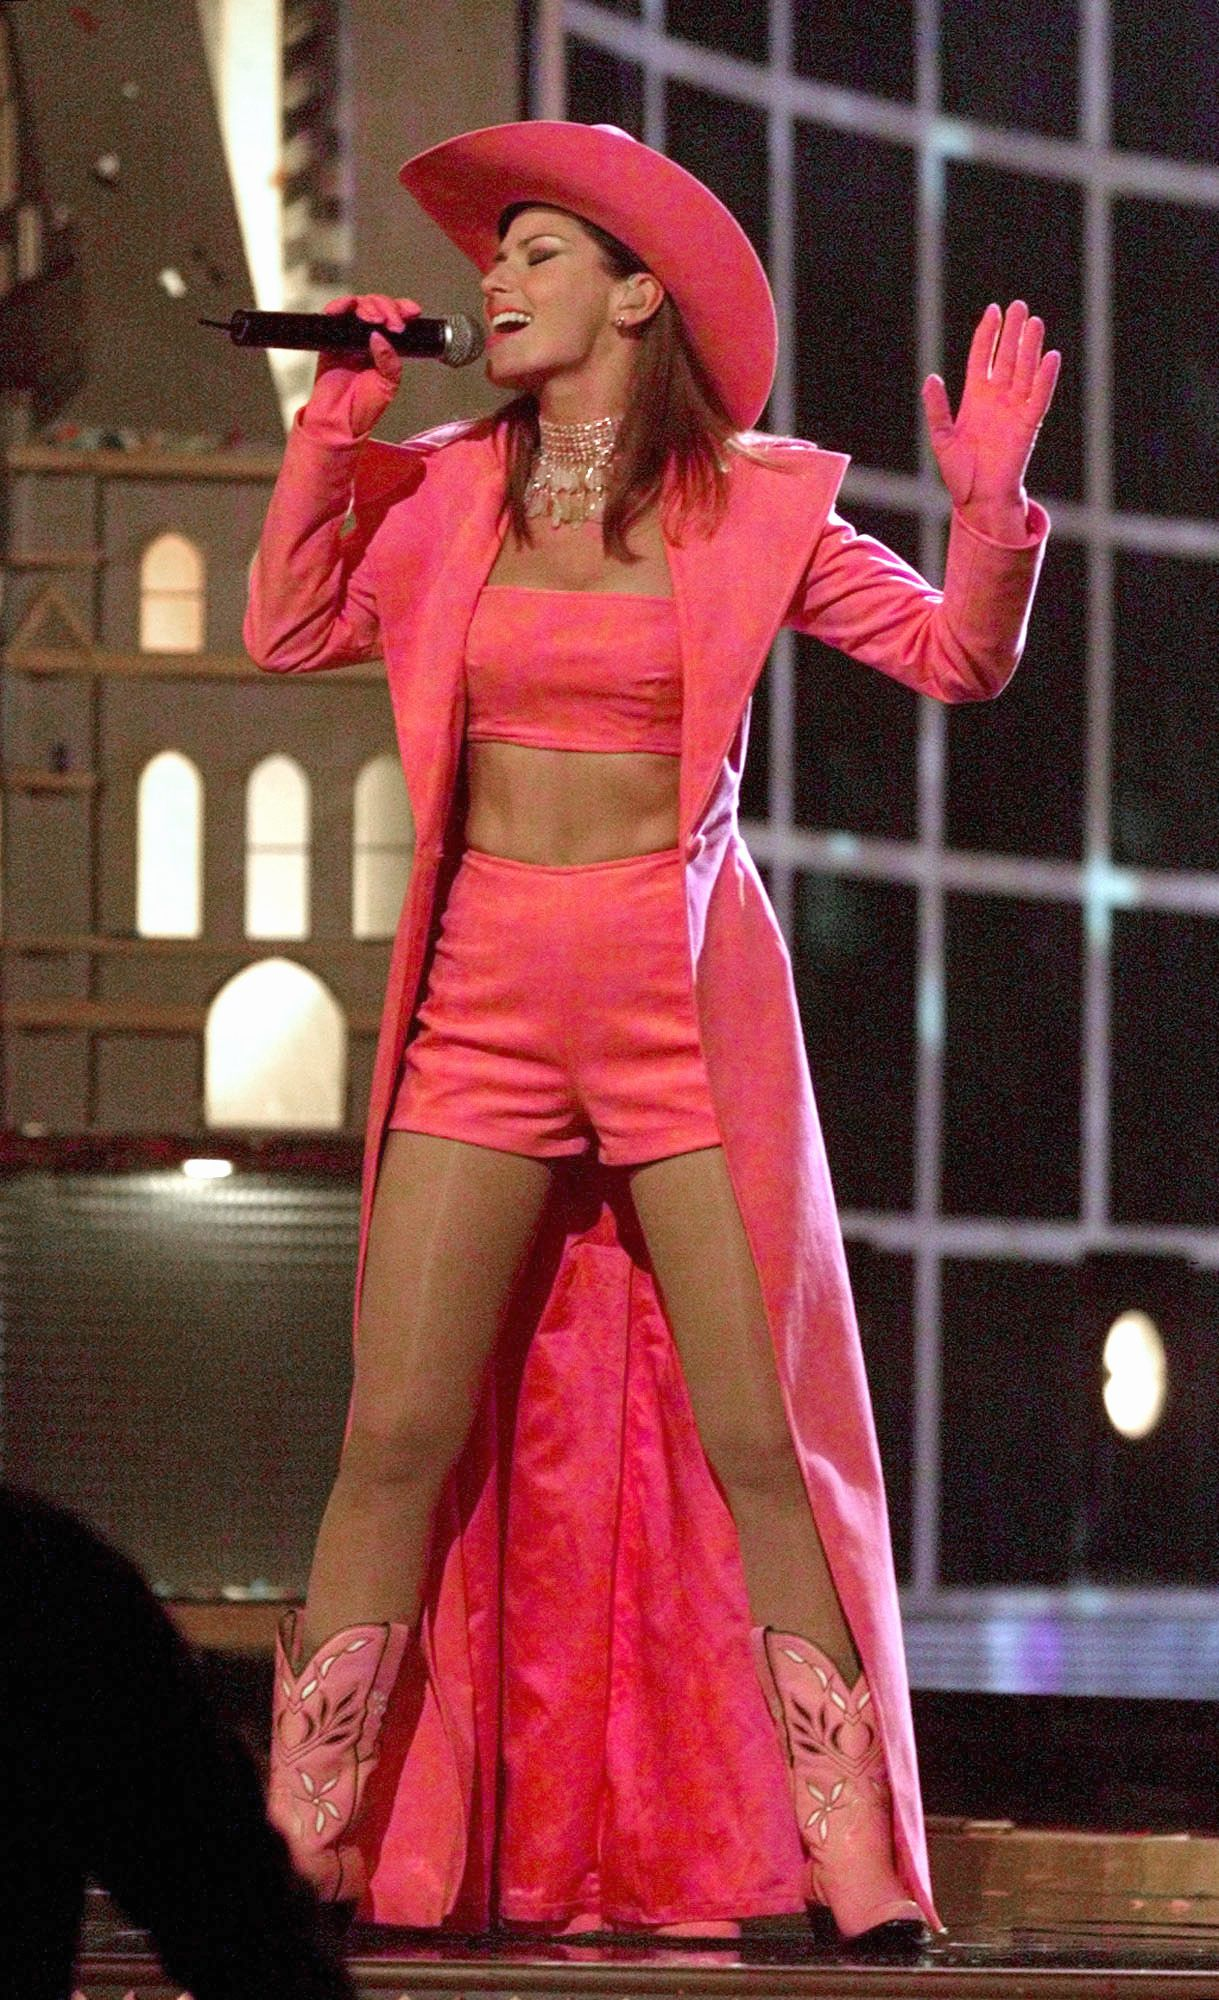 Female Singers Of The 90s Where Are They Now Shania Twain Pictures Shania Twain Country Pop